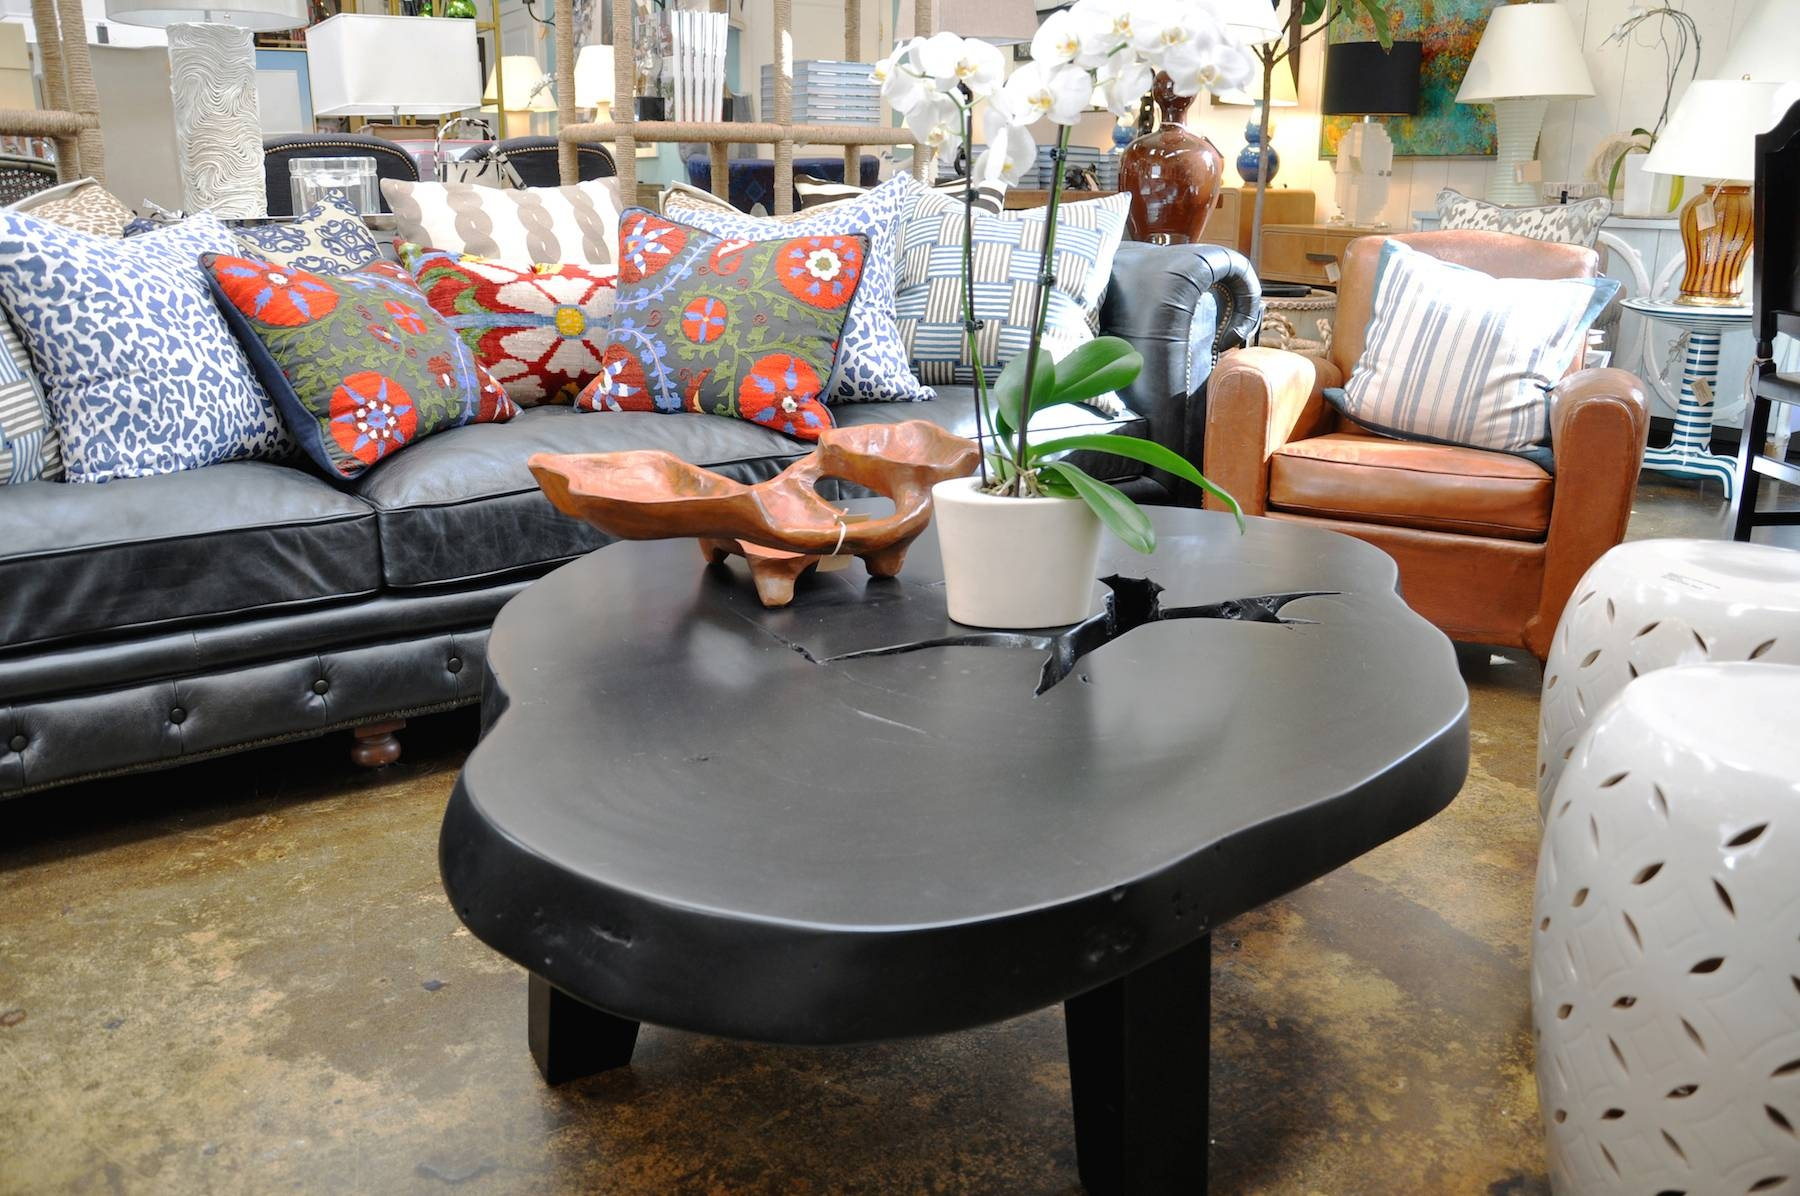 Free Form Albezia Wood Coffee Table - Mecox Gardens throughout Free Form Coffee Tables (Image 9 of 30)